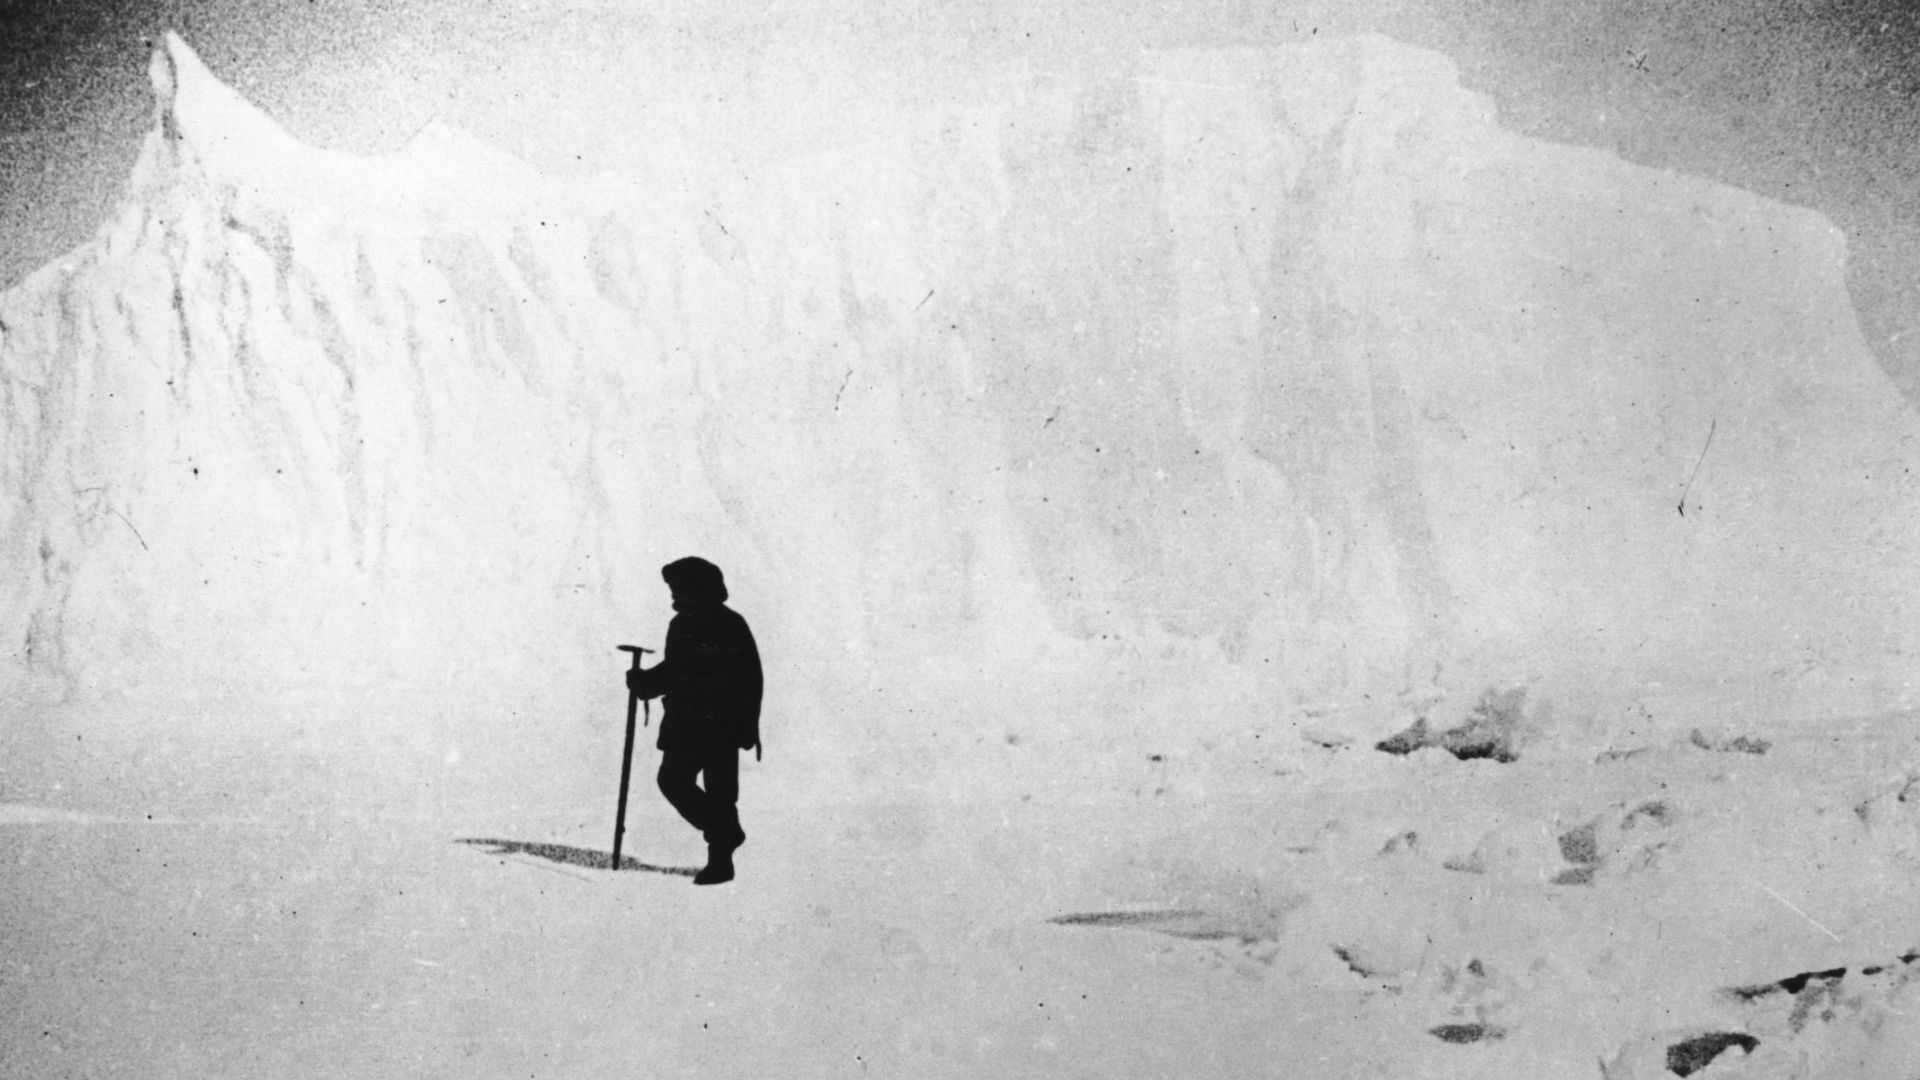 1911: Norwegian explorer Captain Roald Amundsen, the first man to reach the South Pole, inspecting ice fields near a glacier in the Atlantic Ocean.